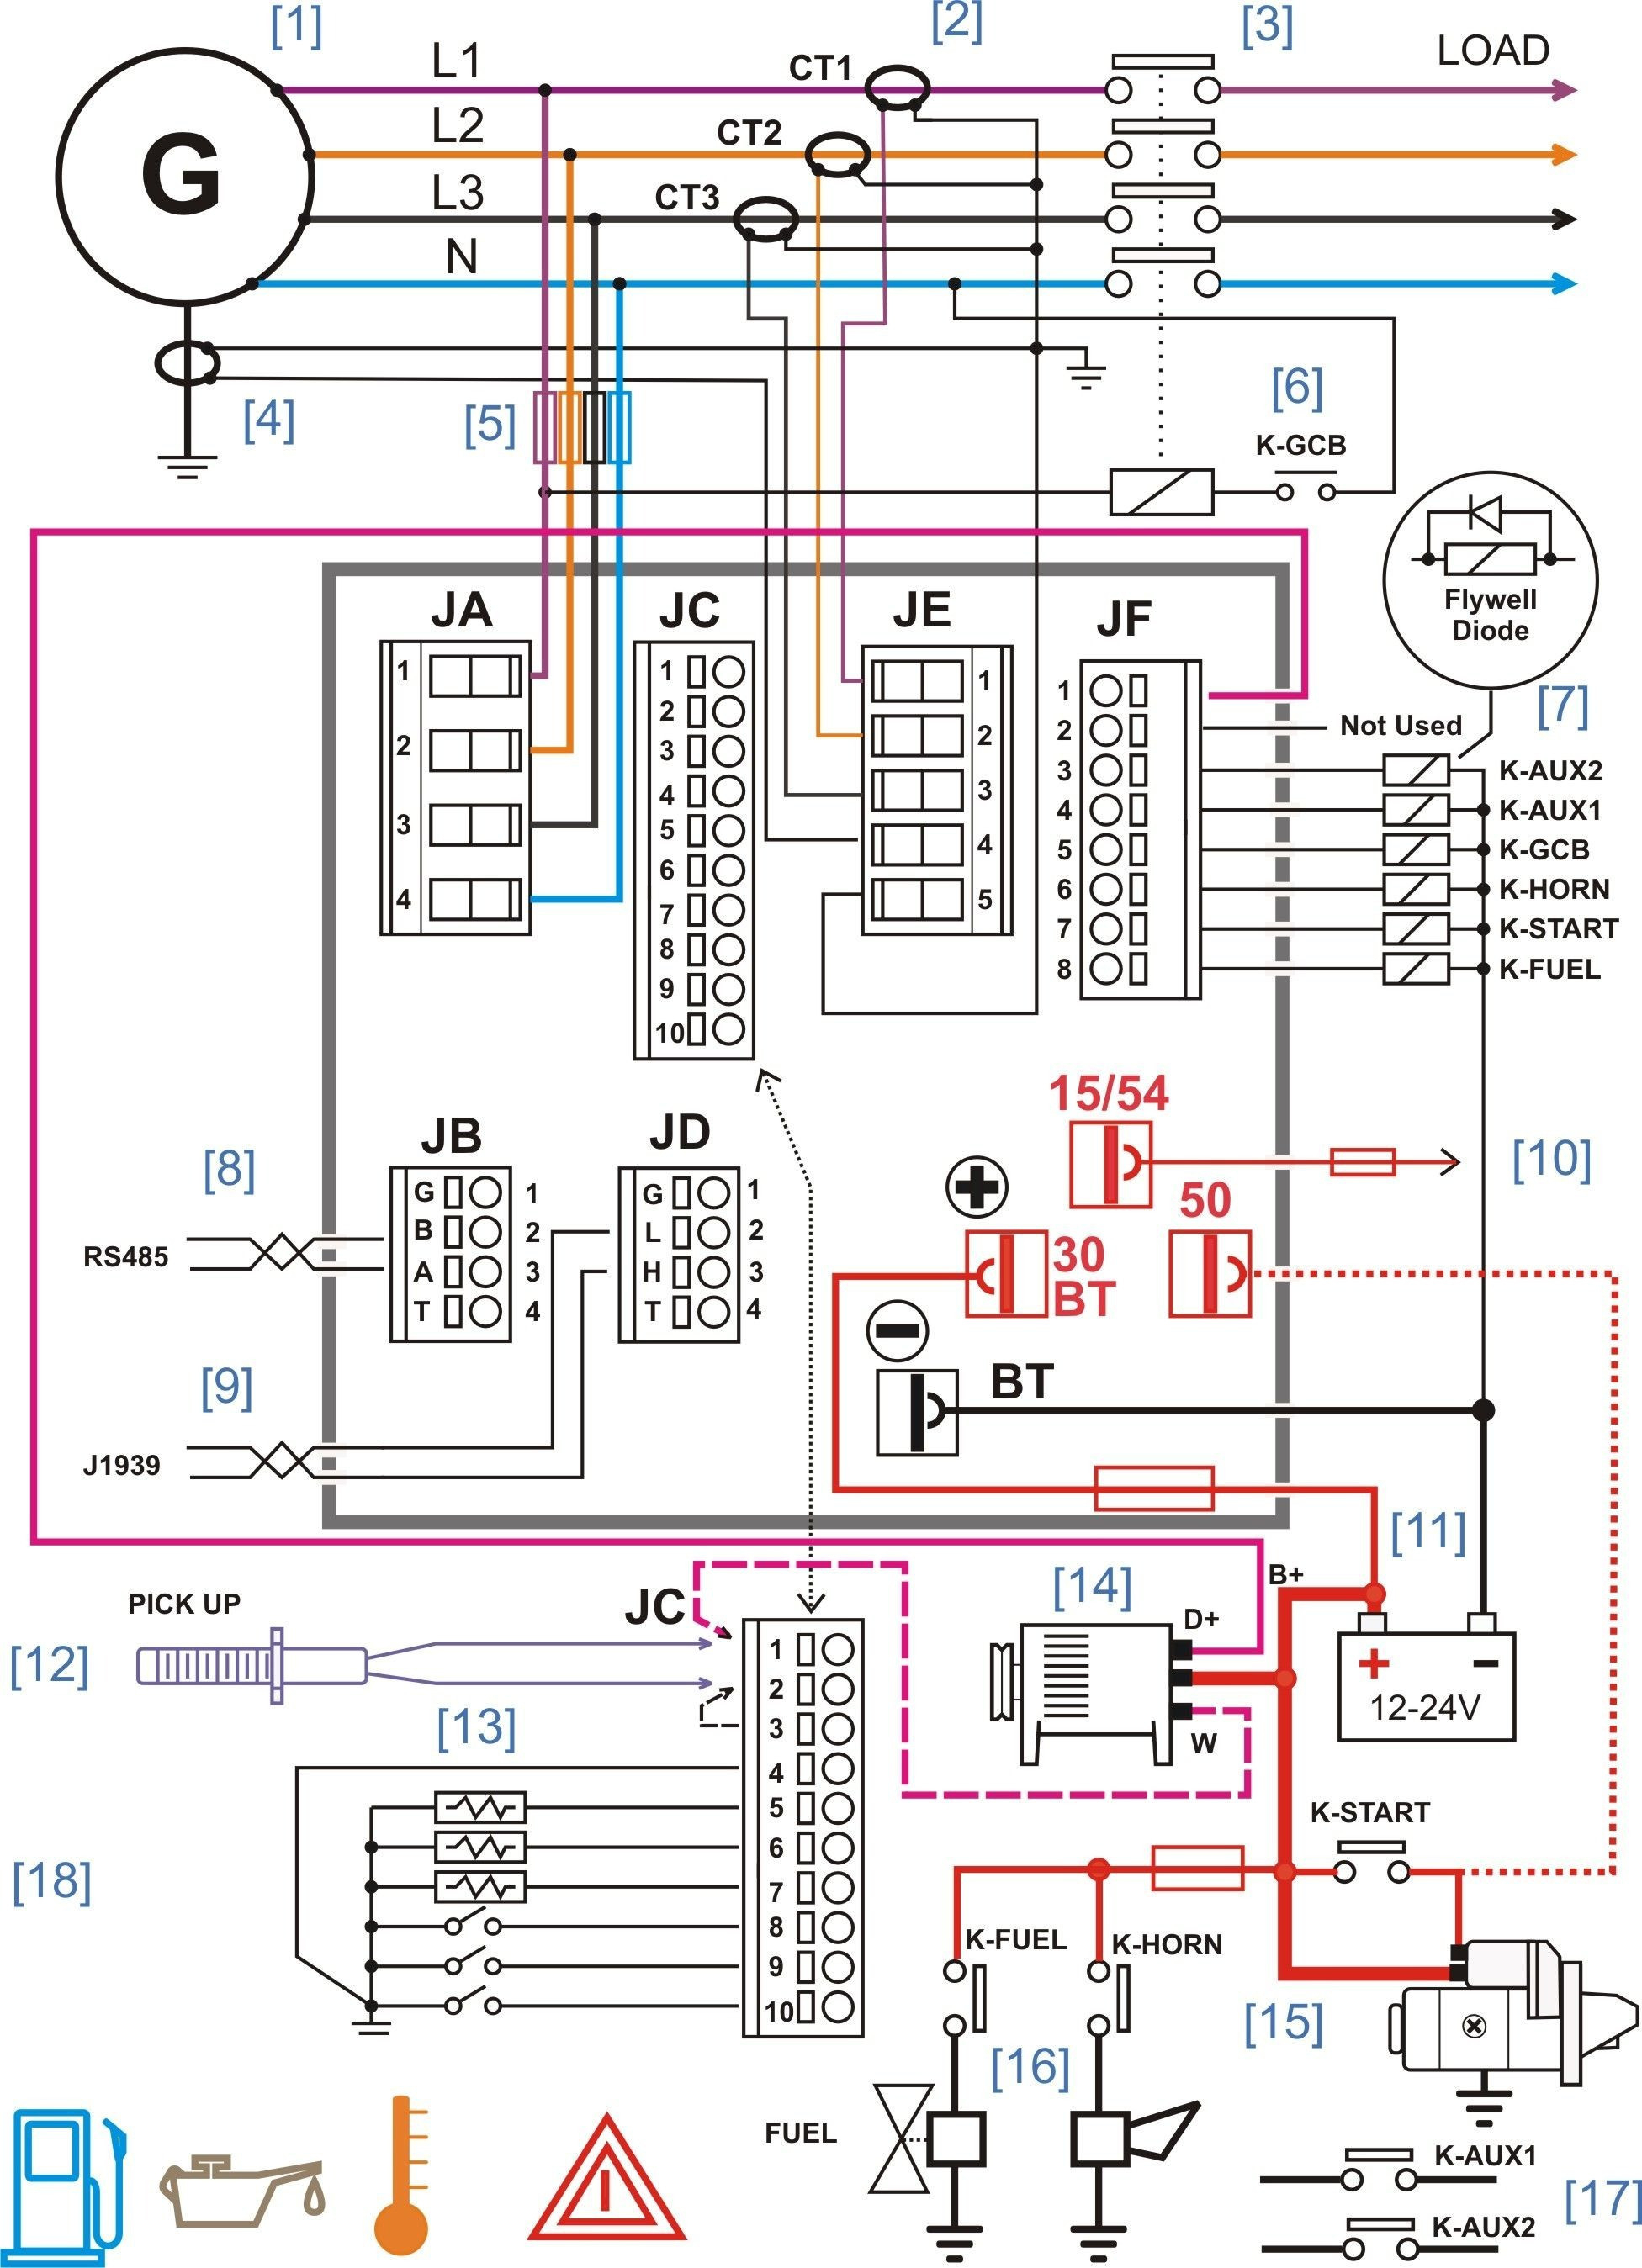 boat wiring diagram software Download-marine wiring diagram software Collection Wiring Diagram software for Mac Inspirationa Electrical Circuit Diagram software DOWNLOAD Wiring Diagram 17-i